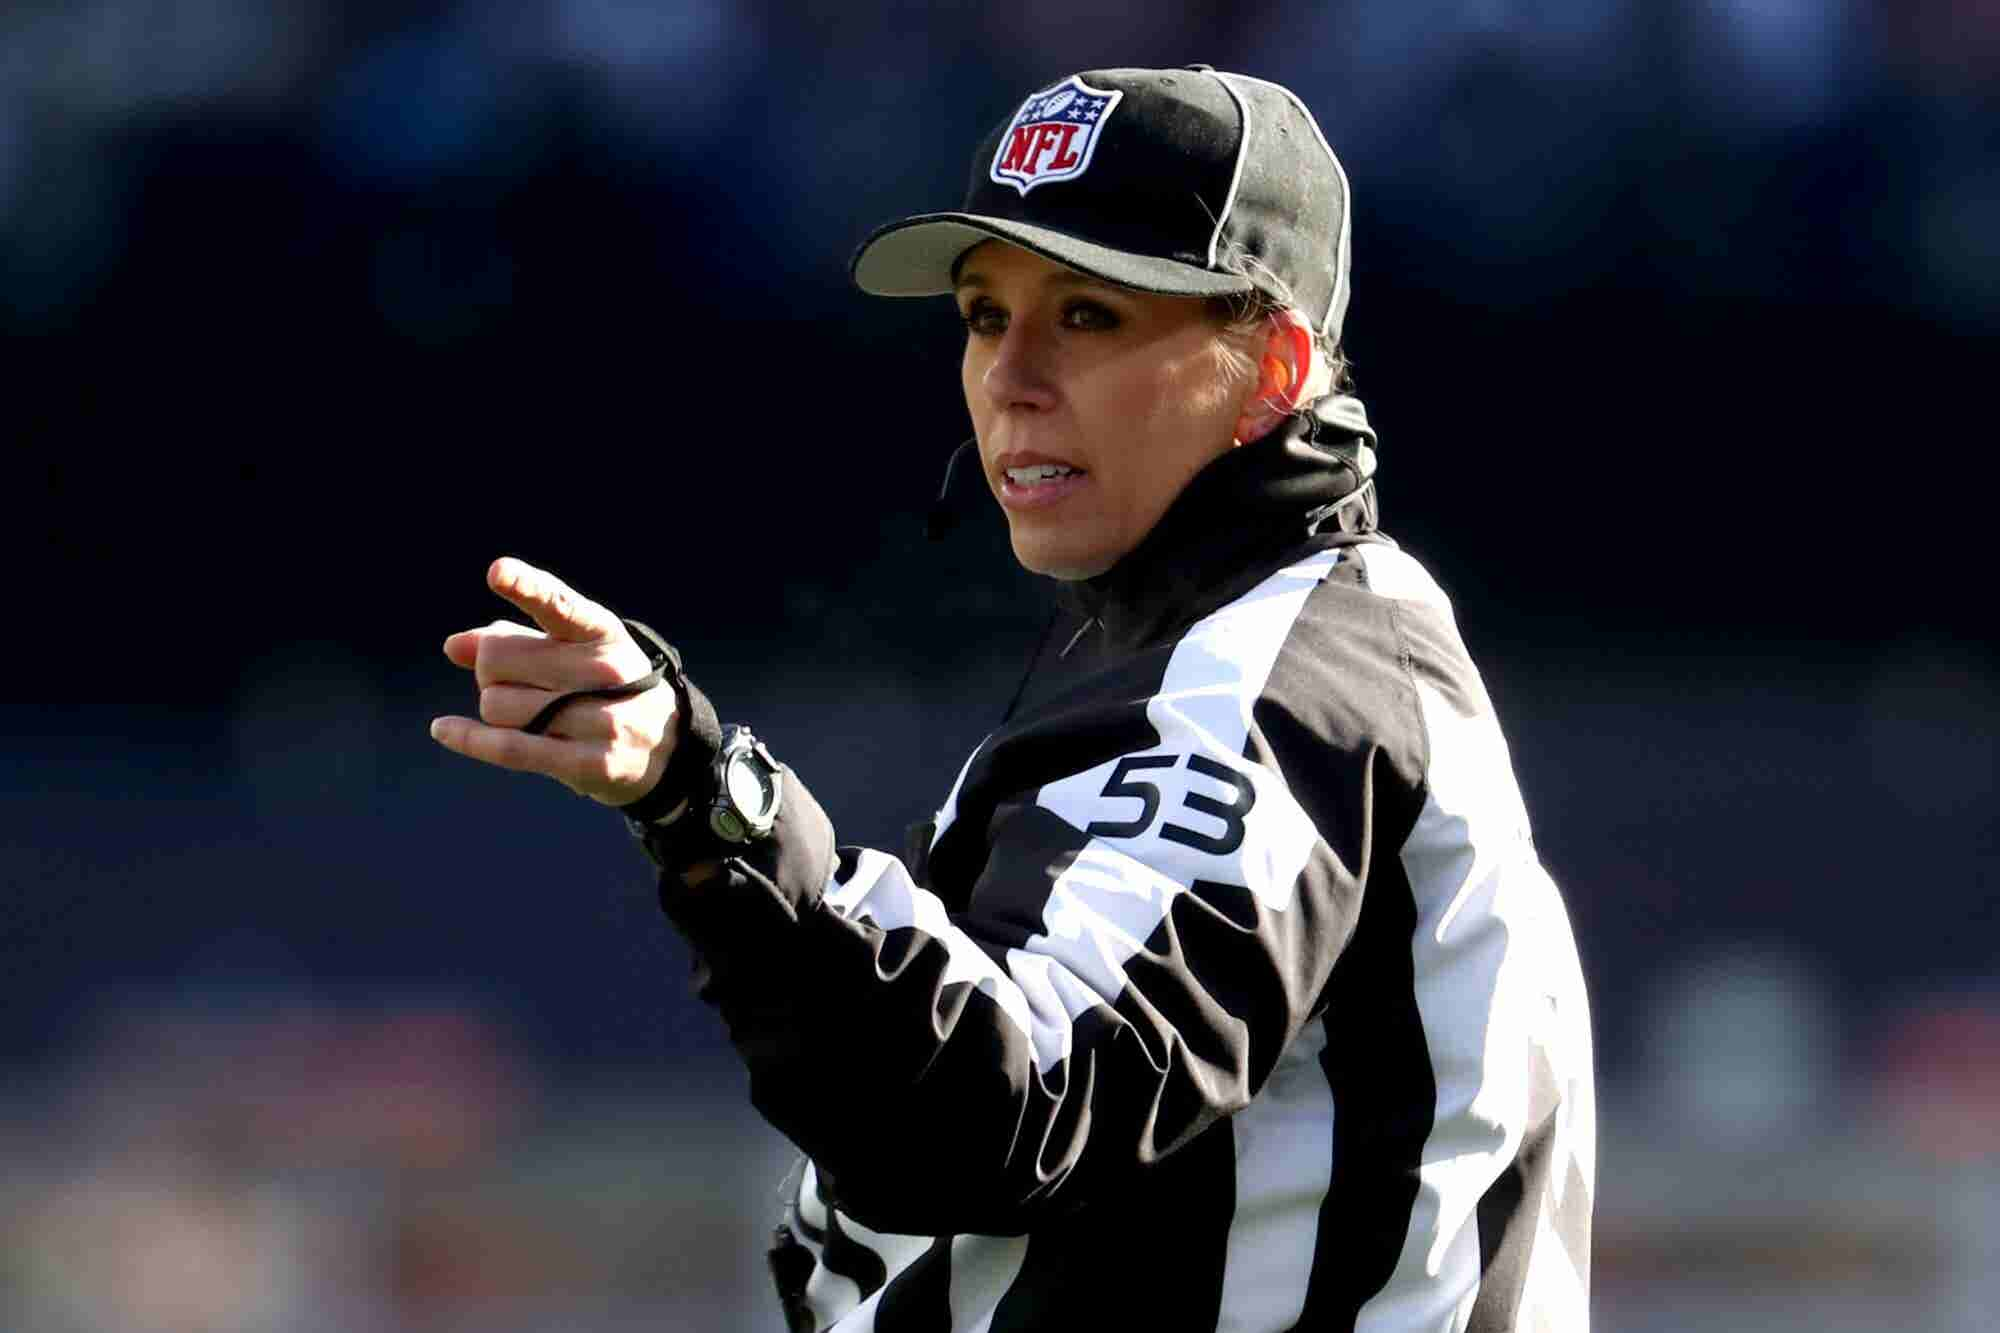 This Woman Just Made NFL History